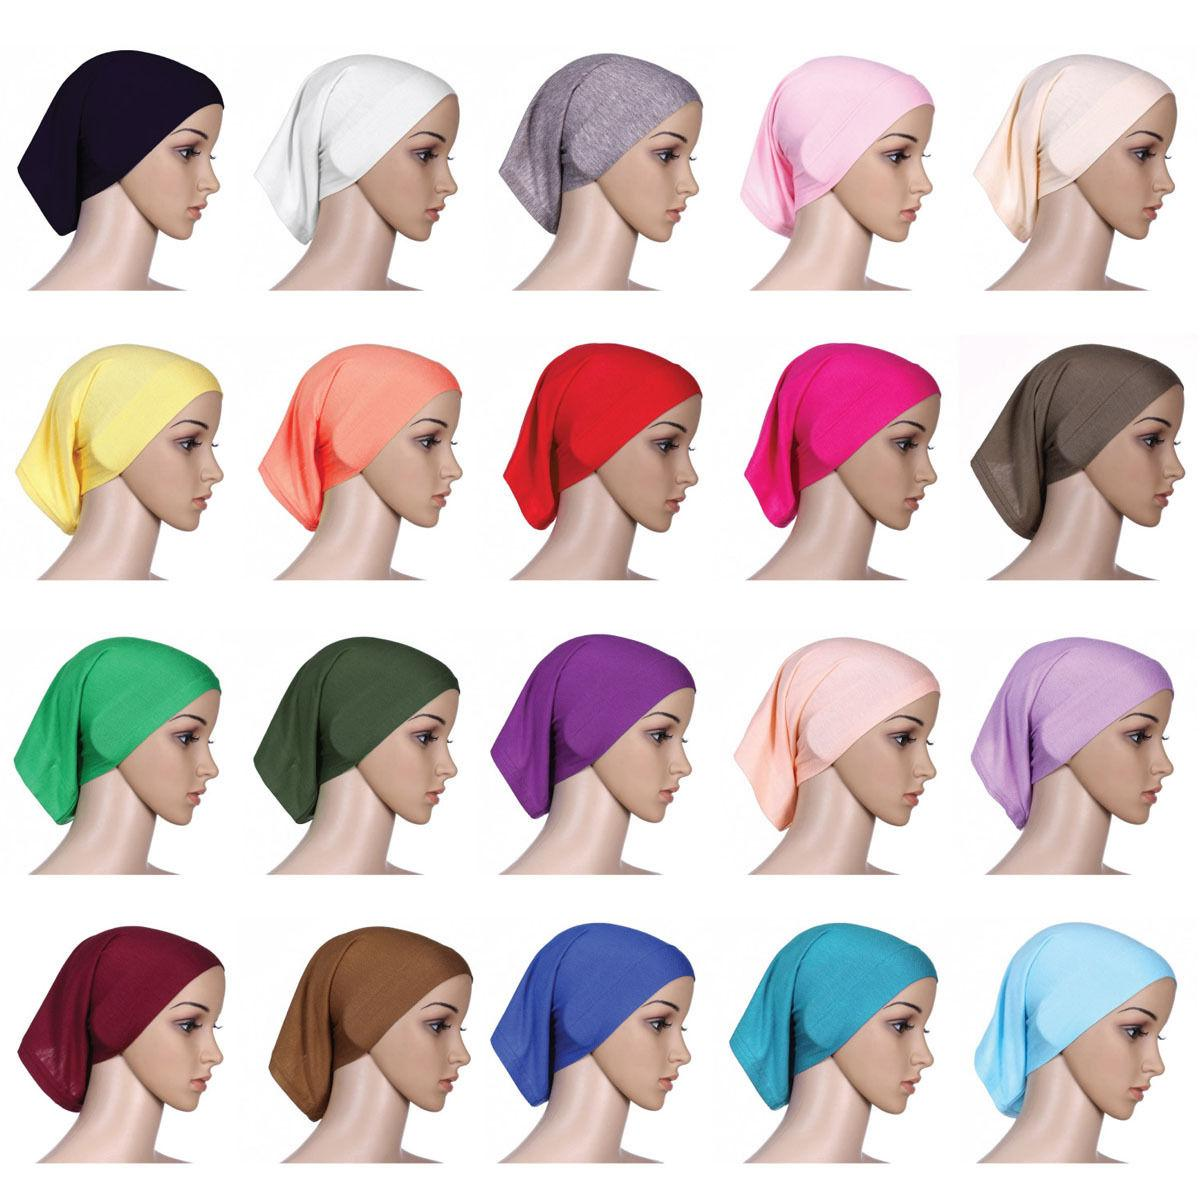 Muslim Women Head Scarf Cotton Underscarf Stretch Hijab Cover Headwrap Underscarf Cap Shawl Islam Scarf Inner Headband Bonnet(China)